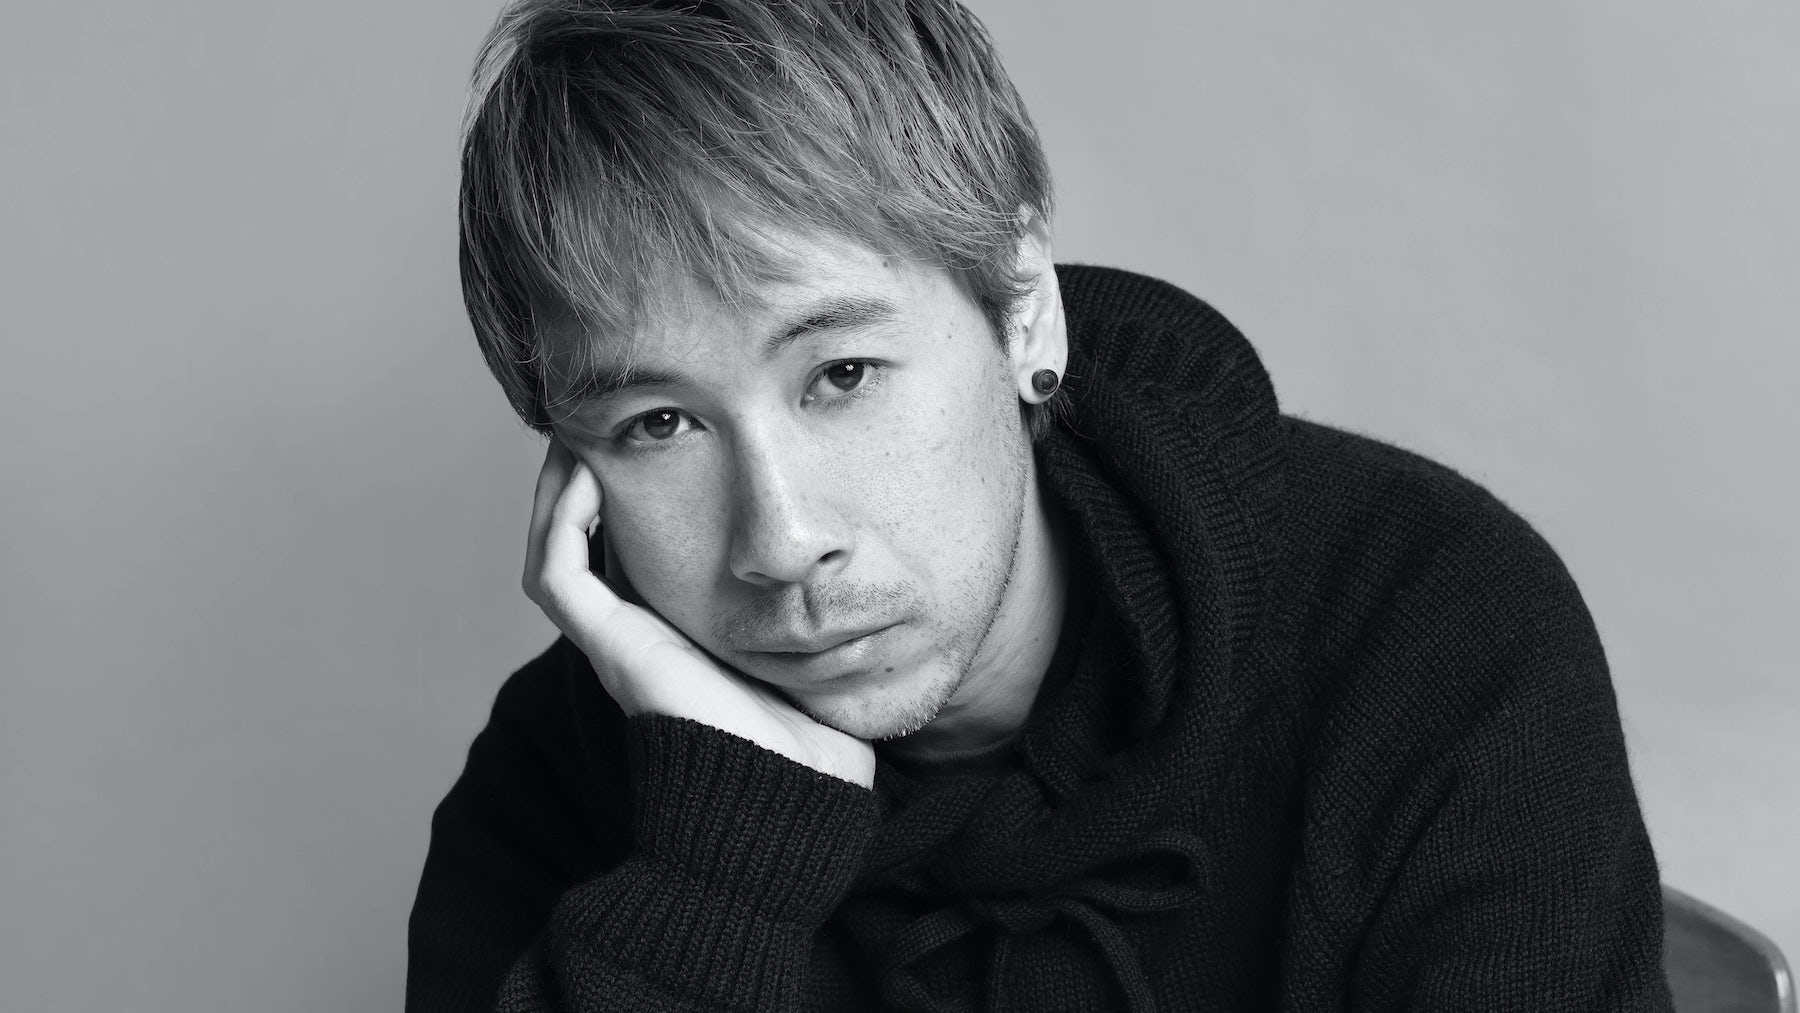 Jun Takahashi, designer and founder of Undercover | Photo: Yoshie Tominaga